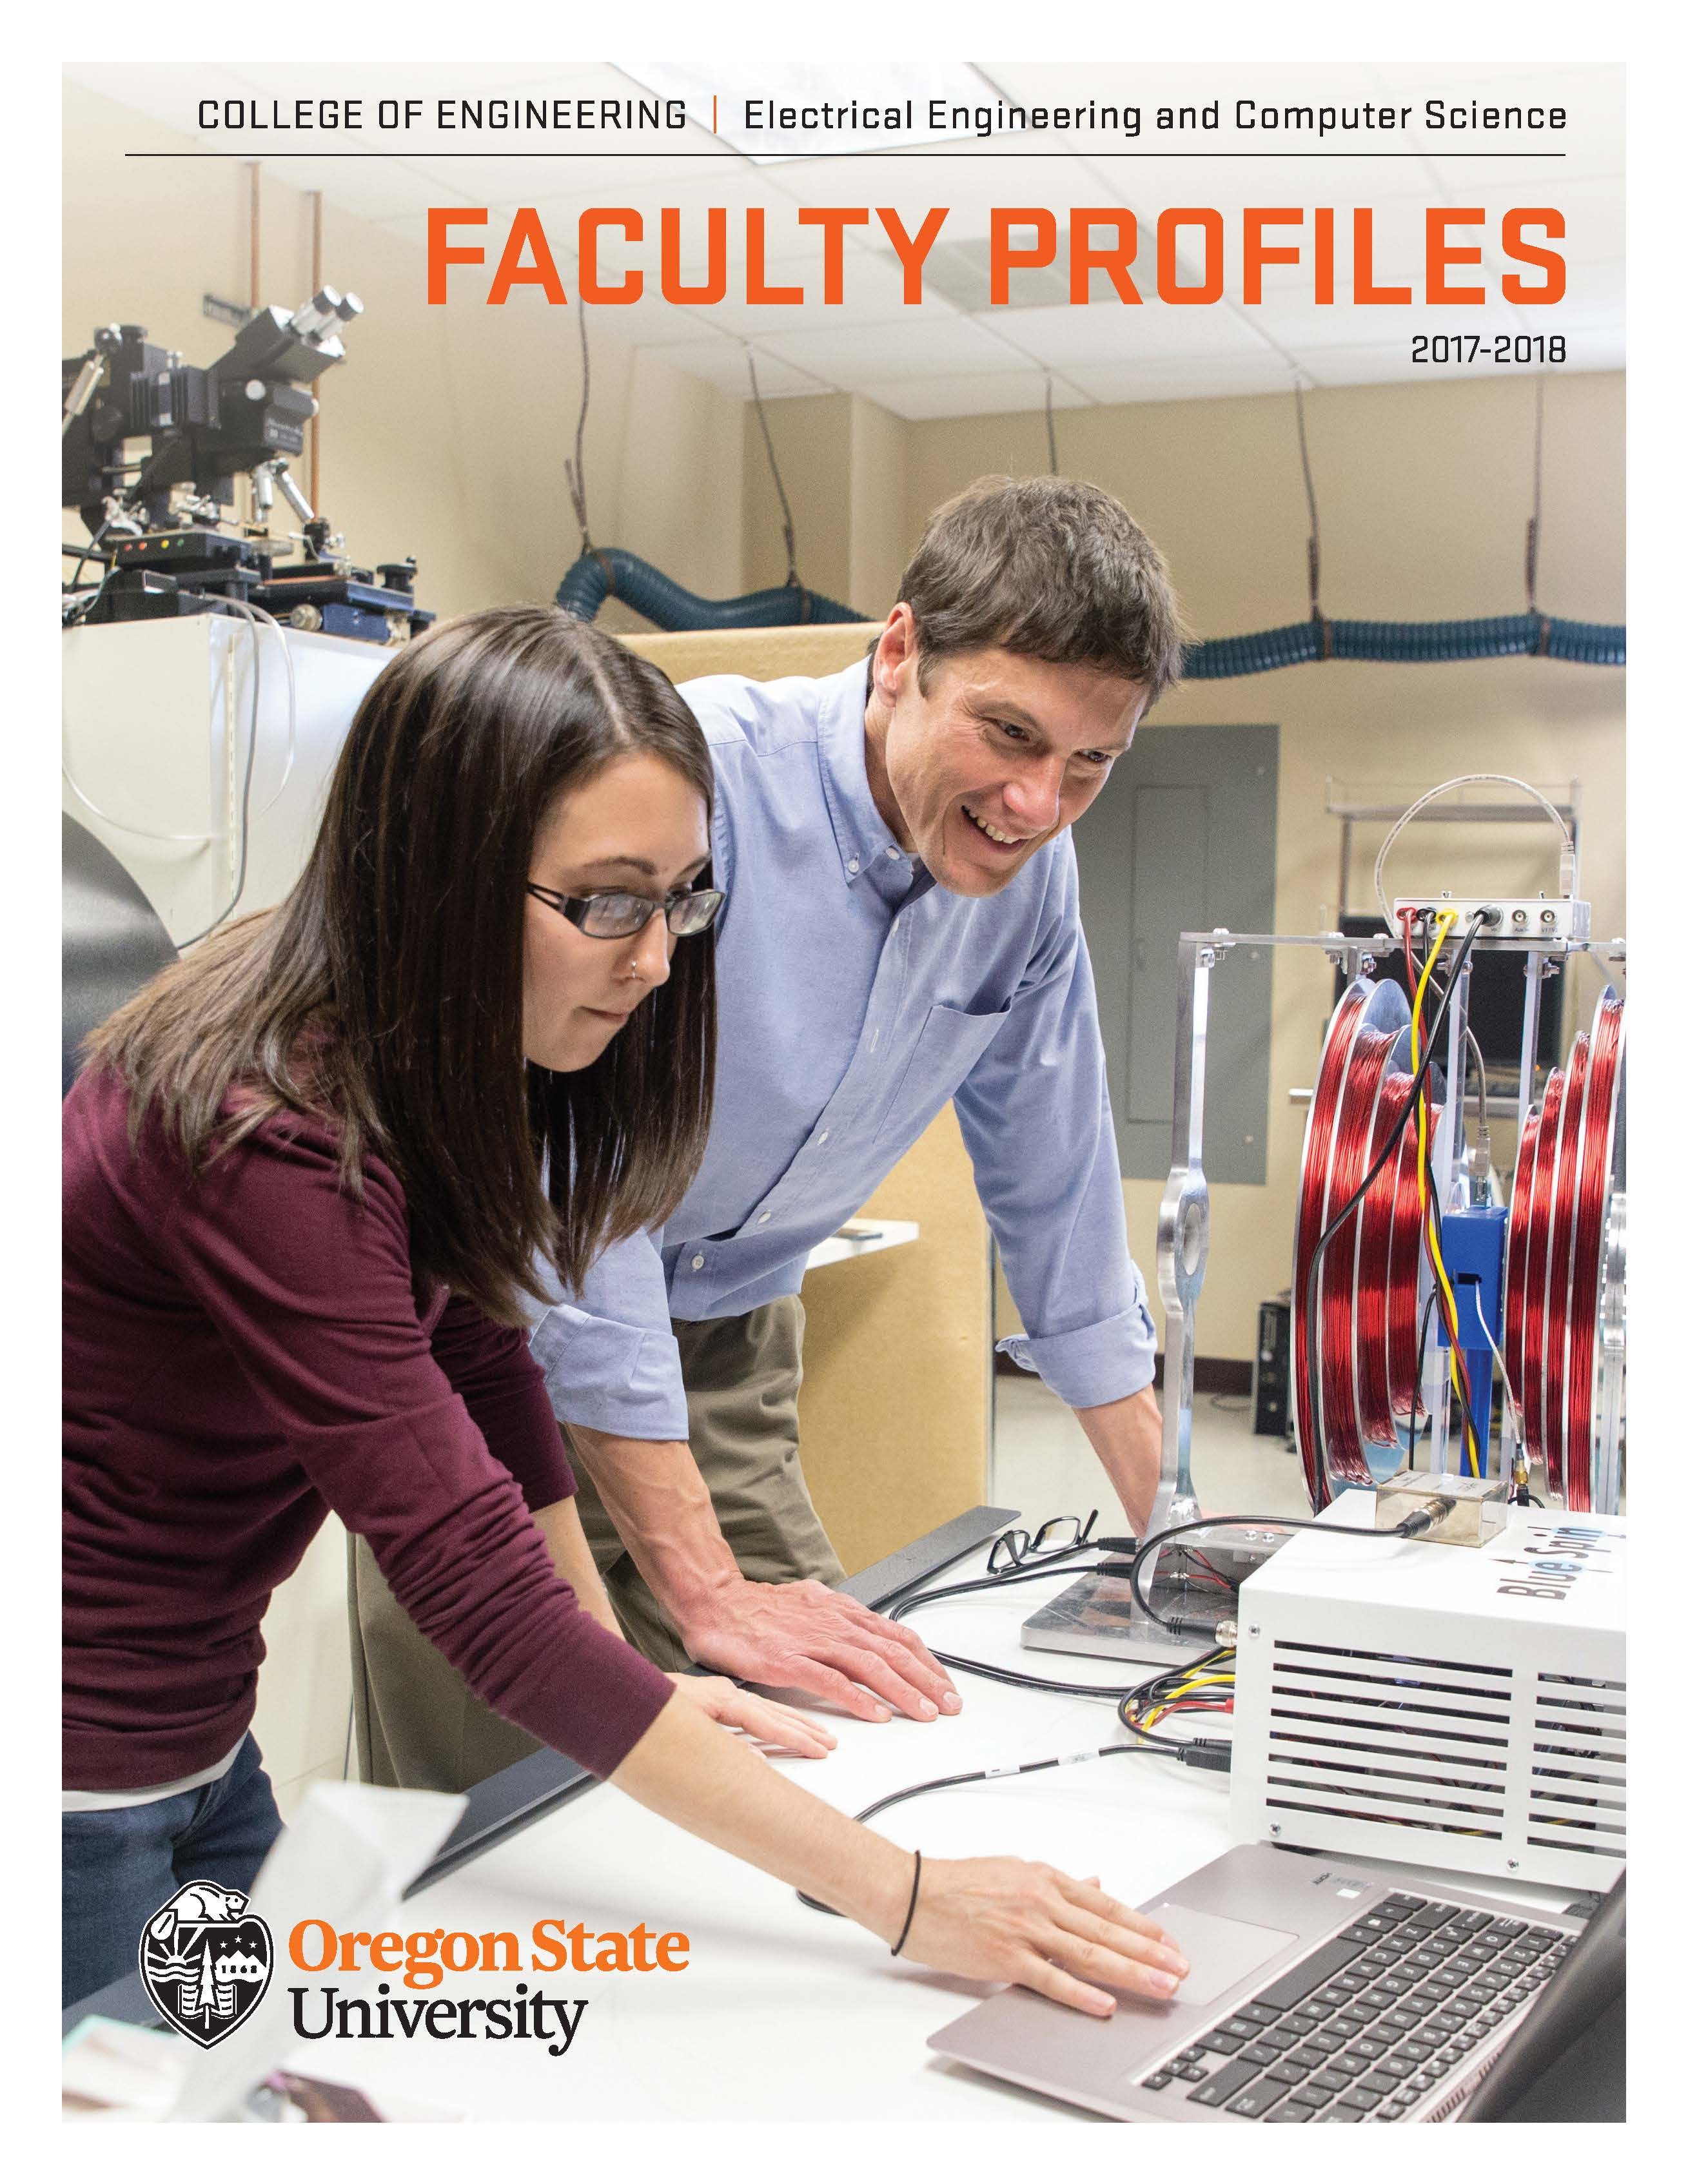 Image of faculty profiles cover page